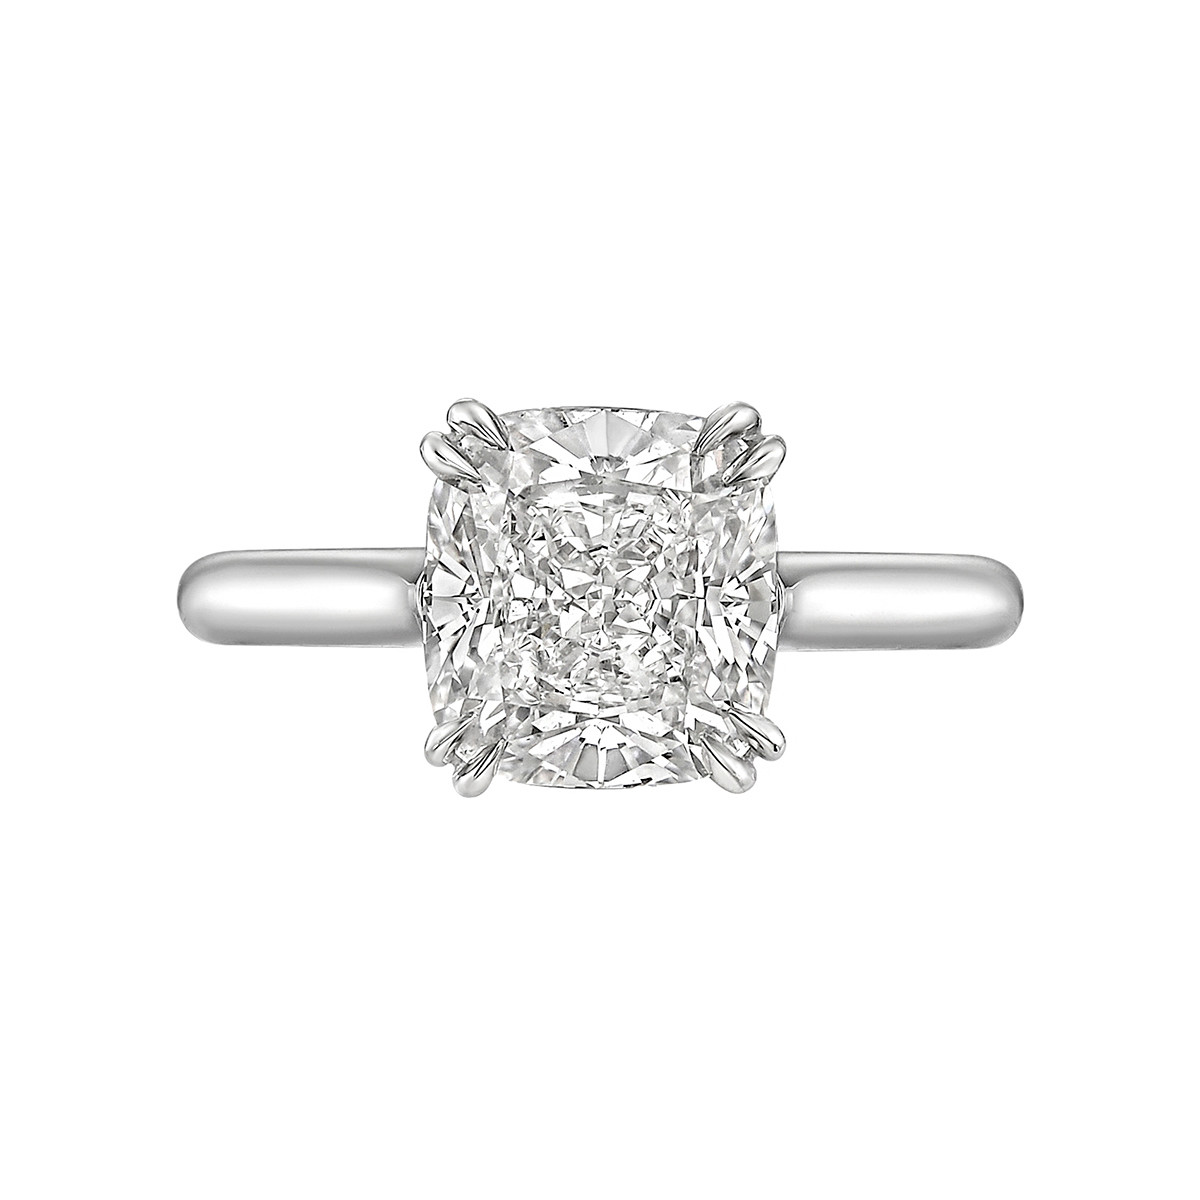 3.01ct Cushion-Cut Diamond Solitaire Ring (G/VVS2)